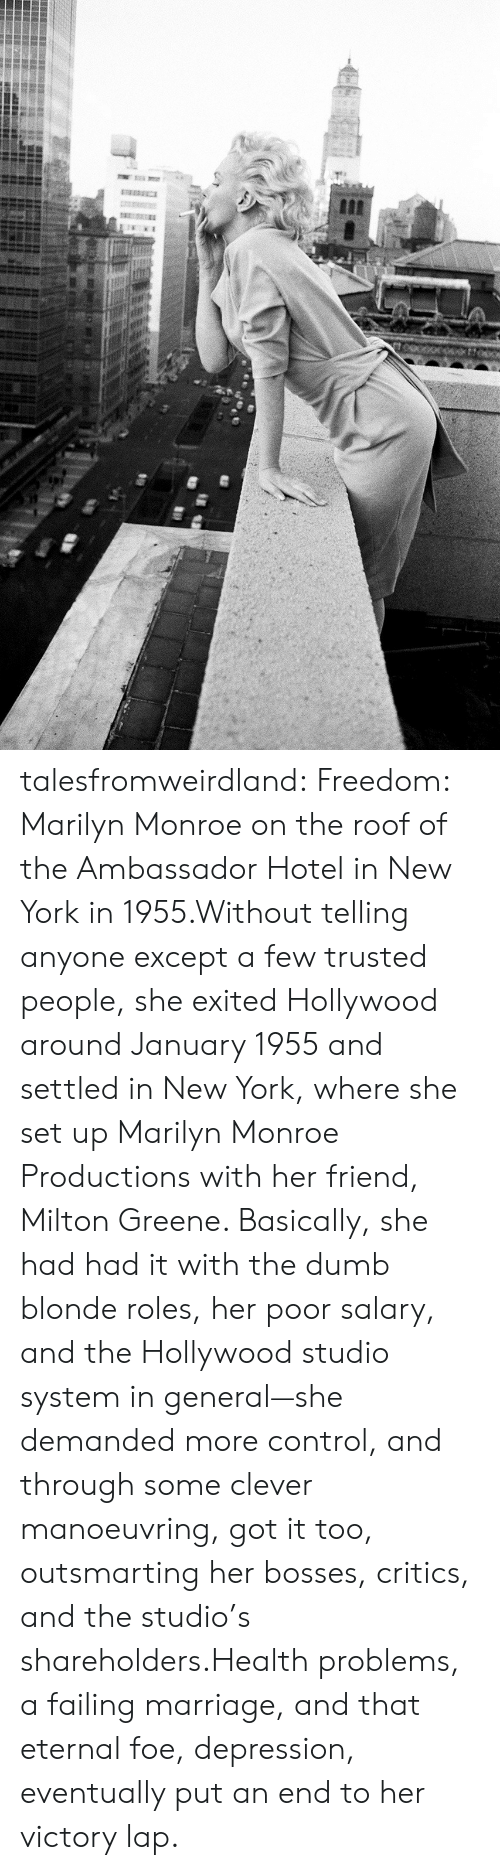 Marilyn Monroe: talesfromweirdland:  Freedom: Marilyn Monroe on the roof of the Ambassador Hotel in New York in 1955.Without telling anyone except a few trusted people, she exited Hollywood around January 1955 and settled in New York, where she set up Marilyn Monroe Productions with her friend, Milton Greene. Basically, she had had it with the dumb blonde roles, her poor salary, and the Hollywood studio system in general—she demanded more control, and through some clever manoeuvring, got it too, outsmarting her bosses, critics, and the studio's shareholders.Health problems, a failing marriage, and that eternal foe, depression, eventually put an end to her victory lap.